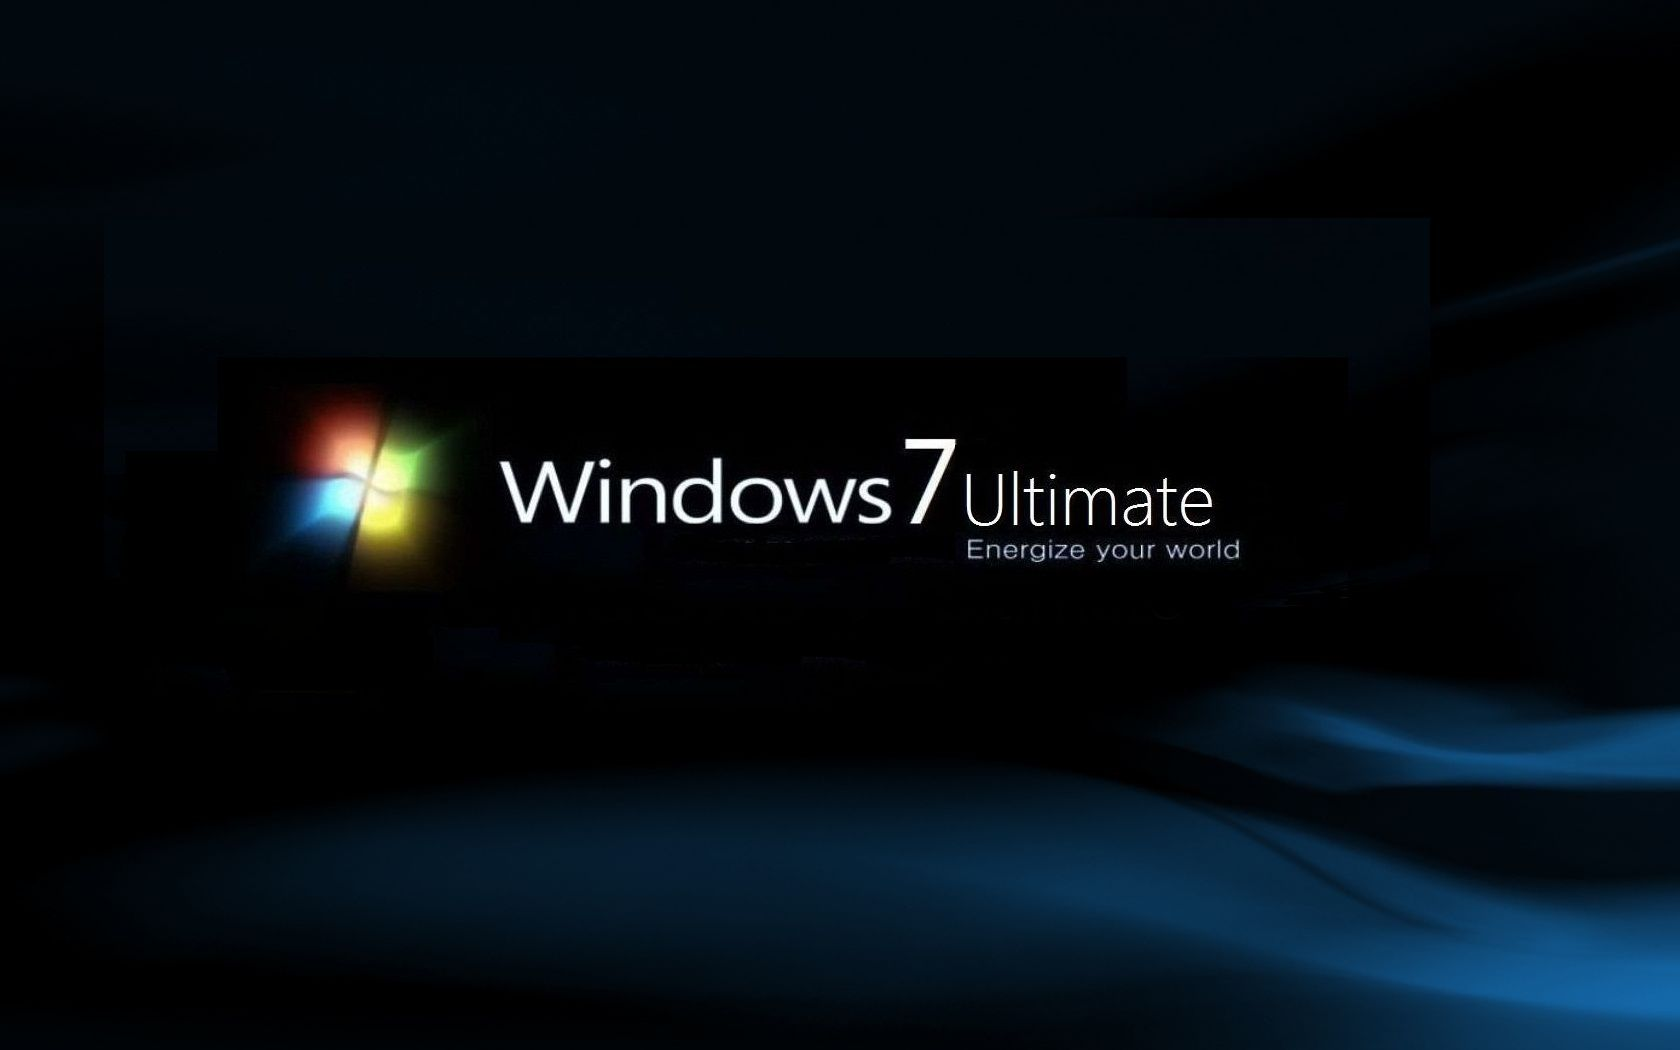 Wallpaper HD For Windows 7 Ultimate